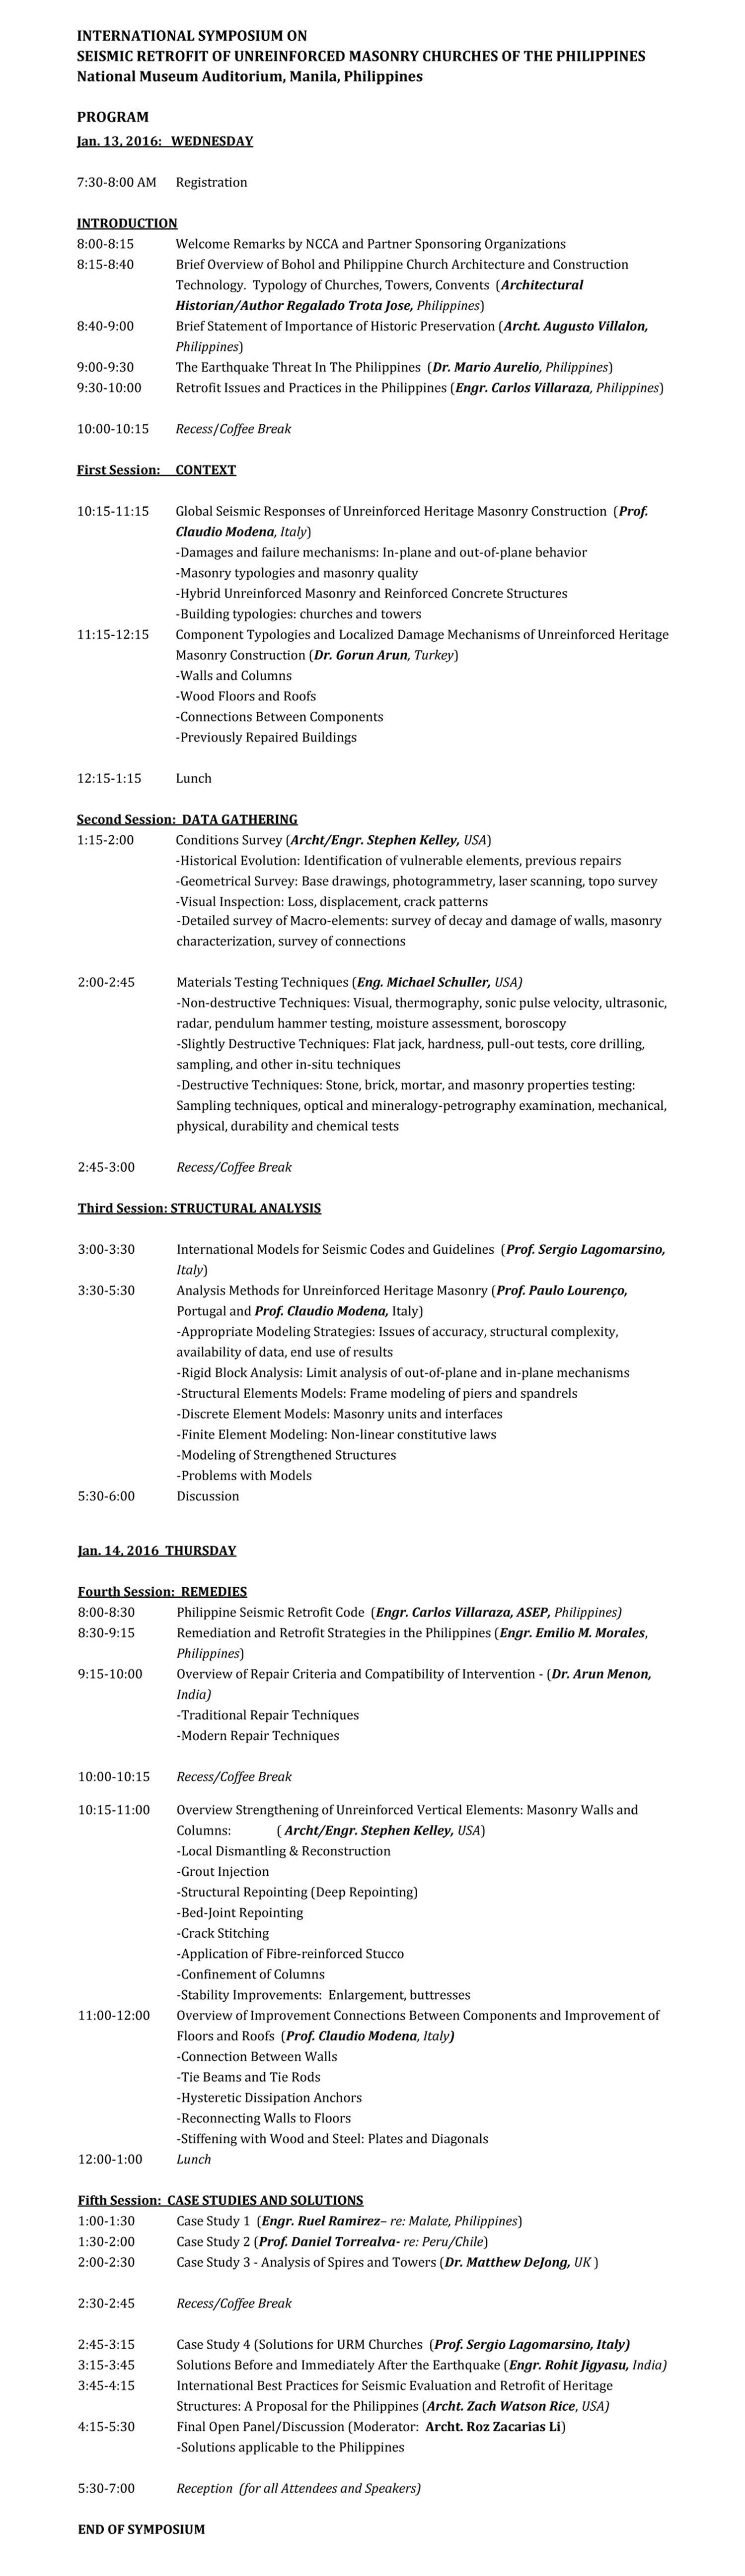 SYMPOSIUM PROGRAM-Revised